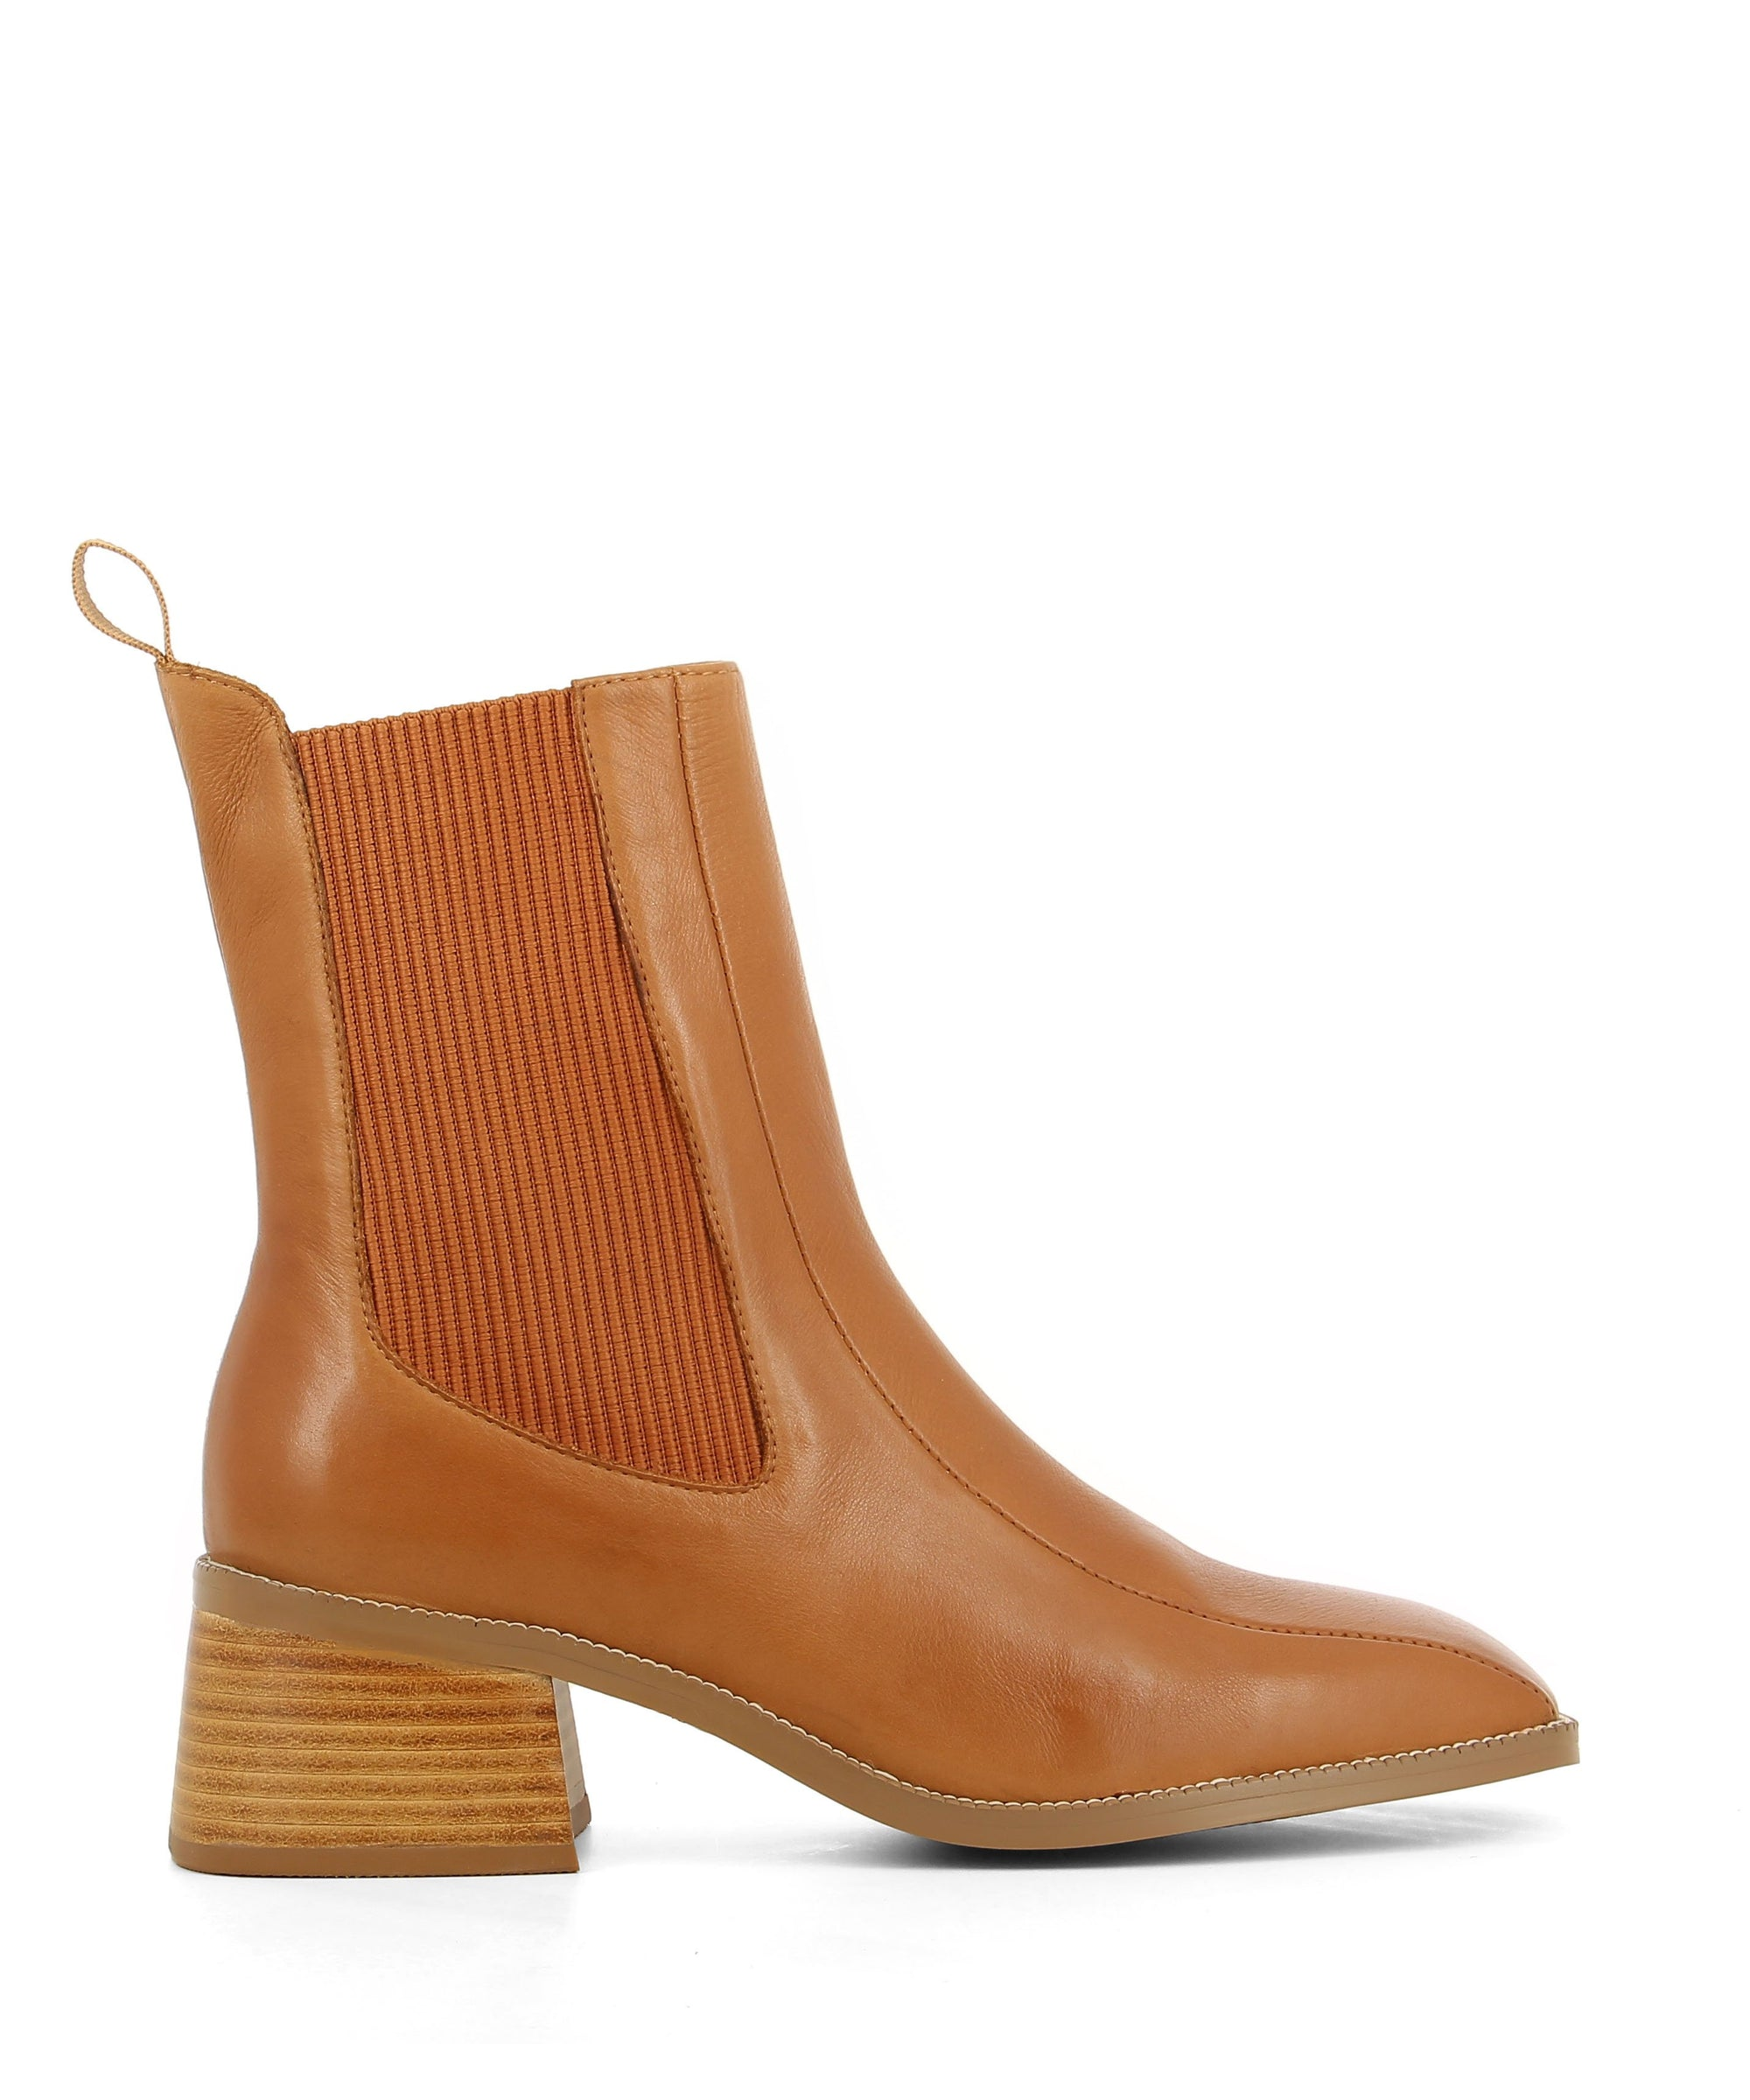 Classic cognac tan leather Chelsea boots that are a pull on style featuring elastic side gussets, a 5cm block heel and a square toe by 2 Baia Vista.